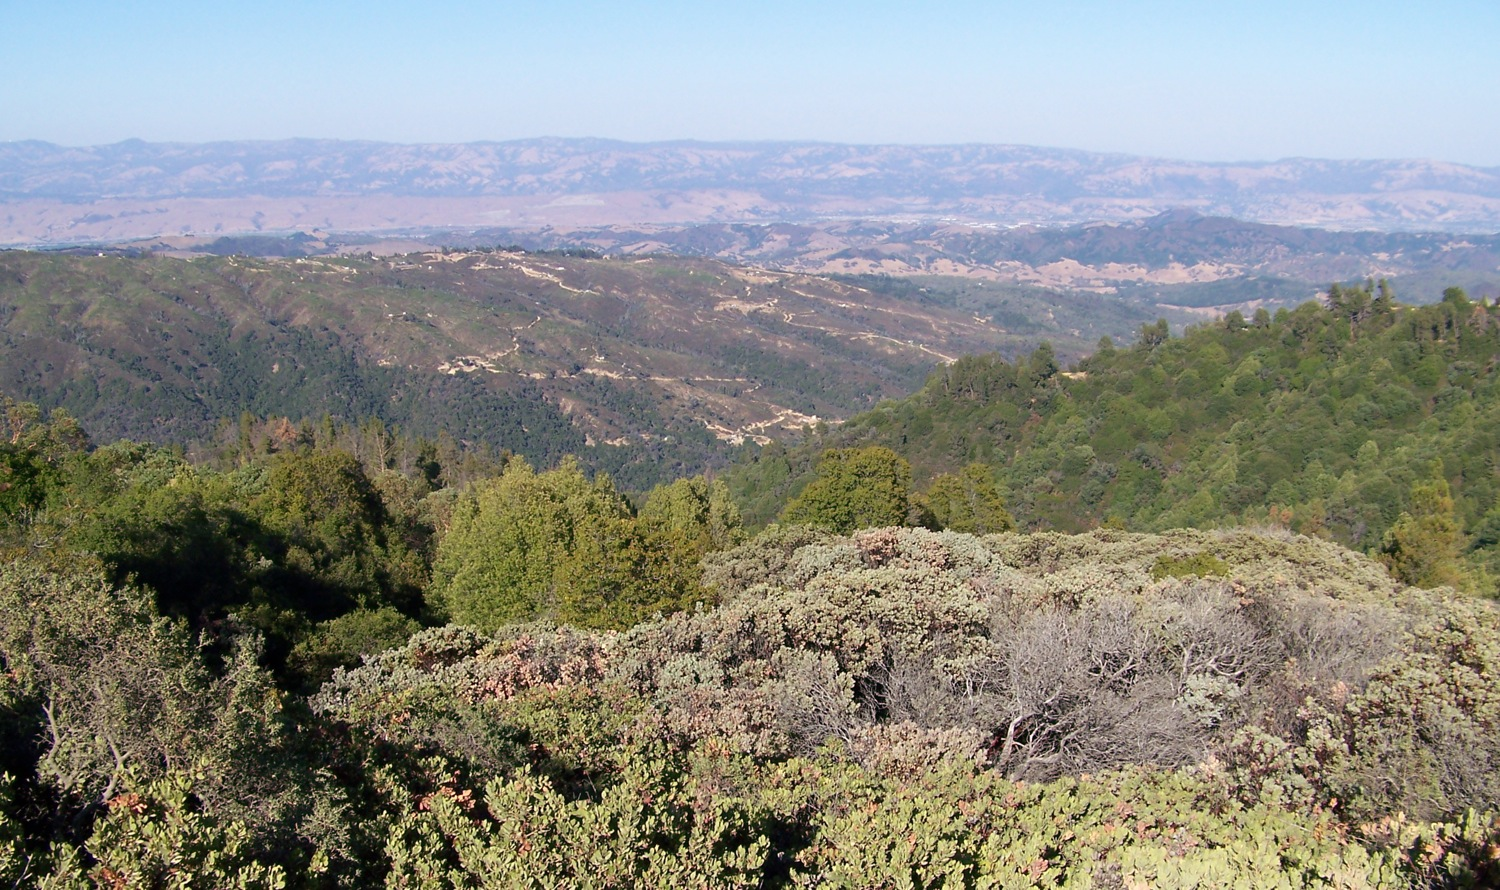 View of Gilroy area from near top of Loma Prieta